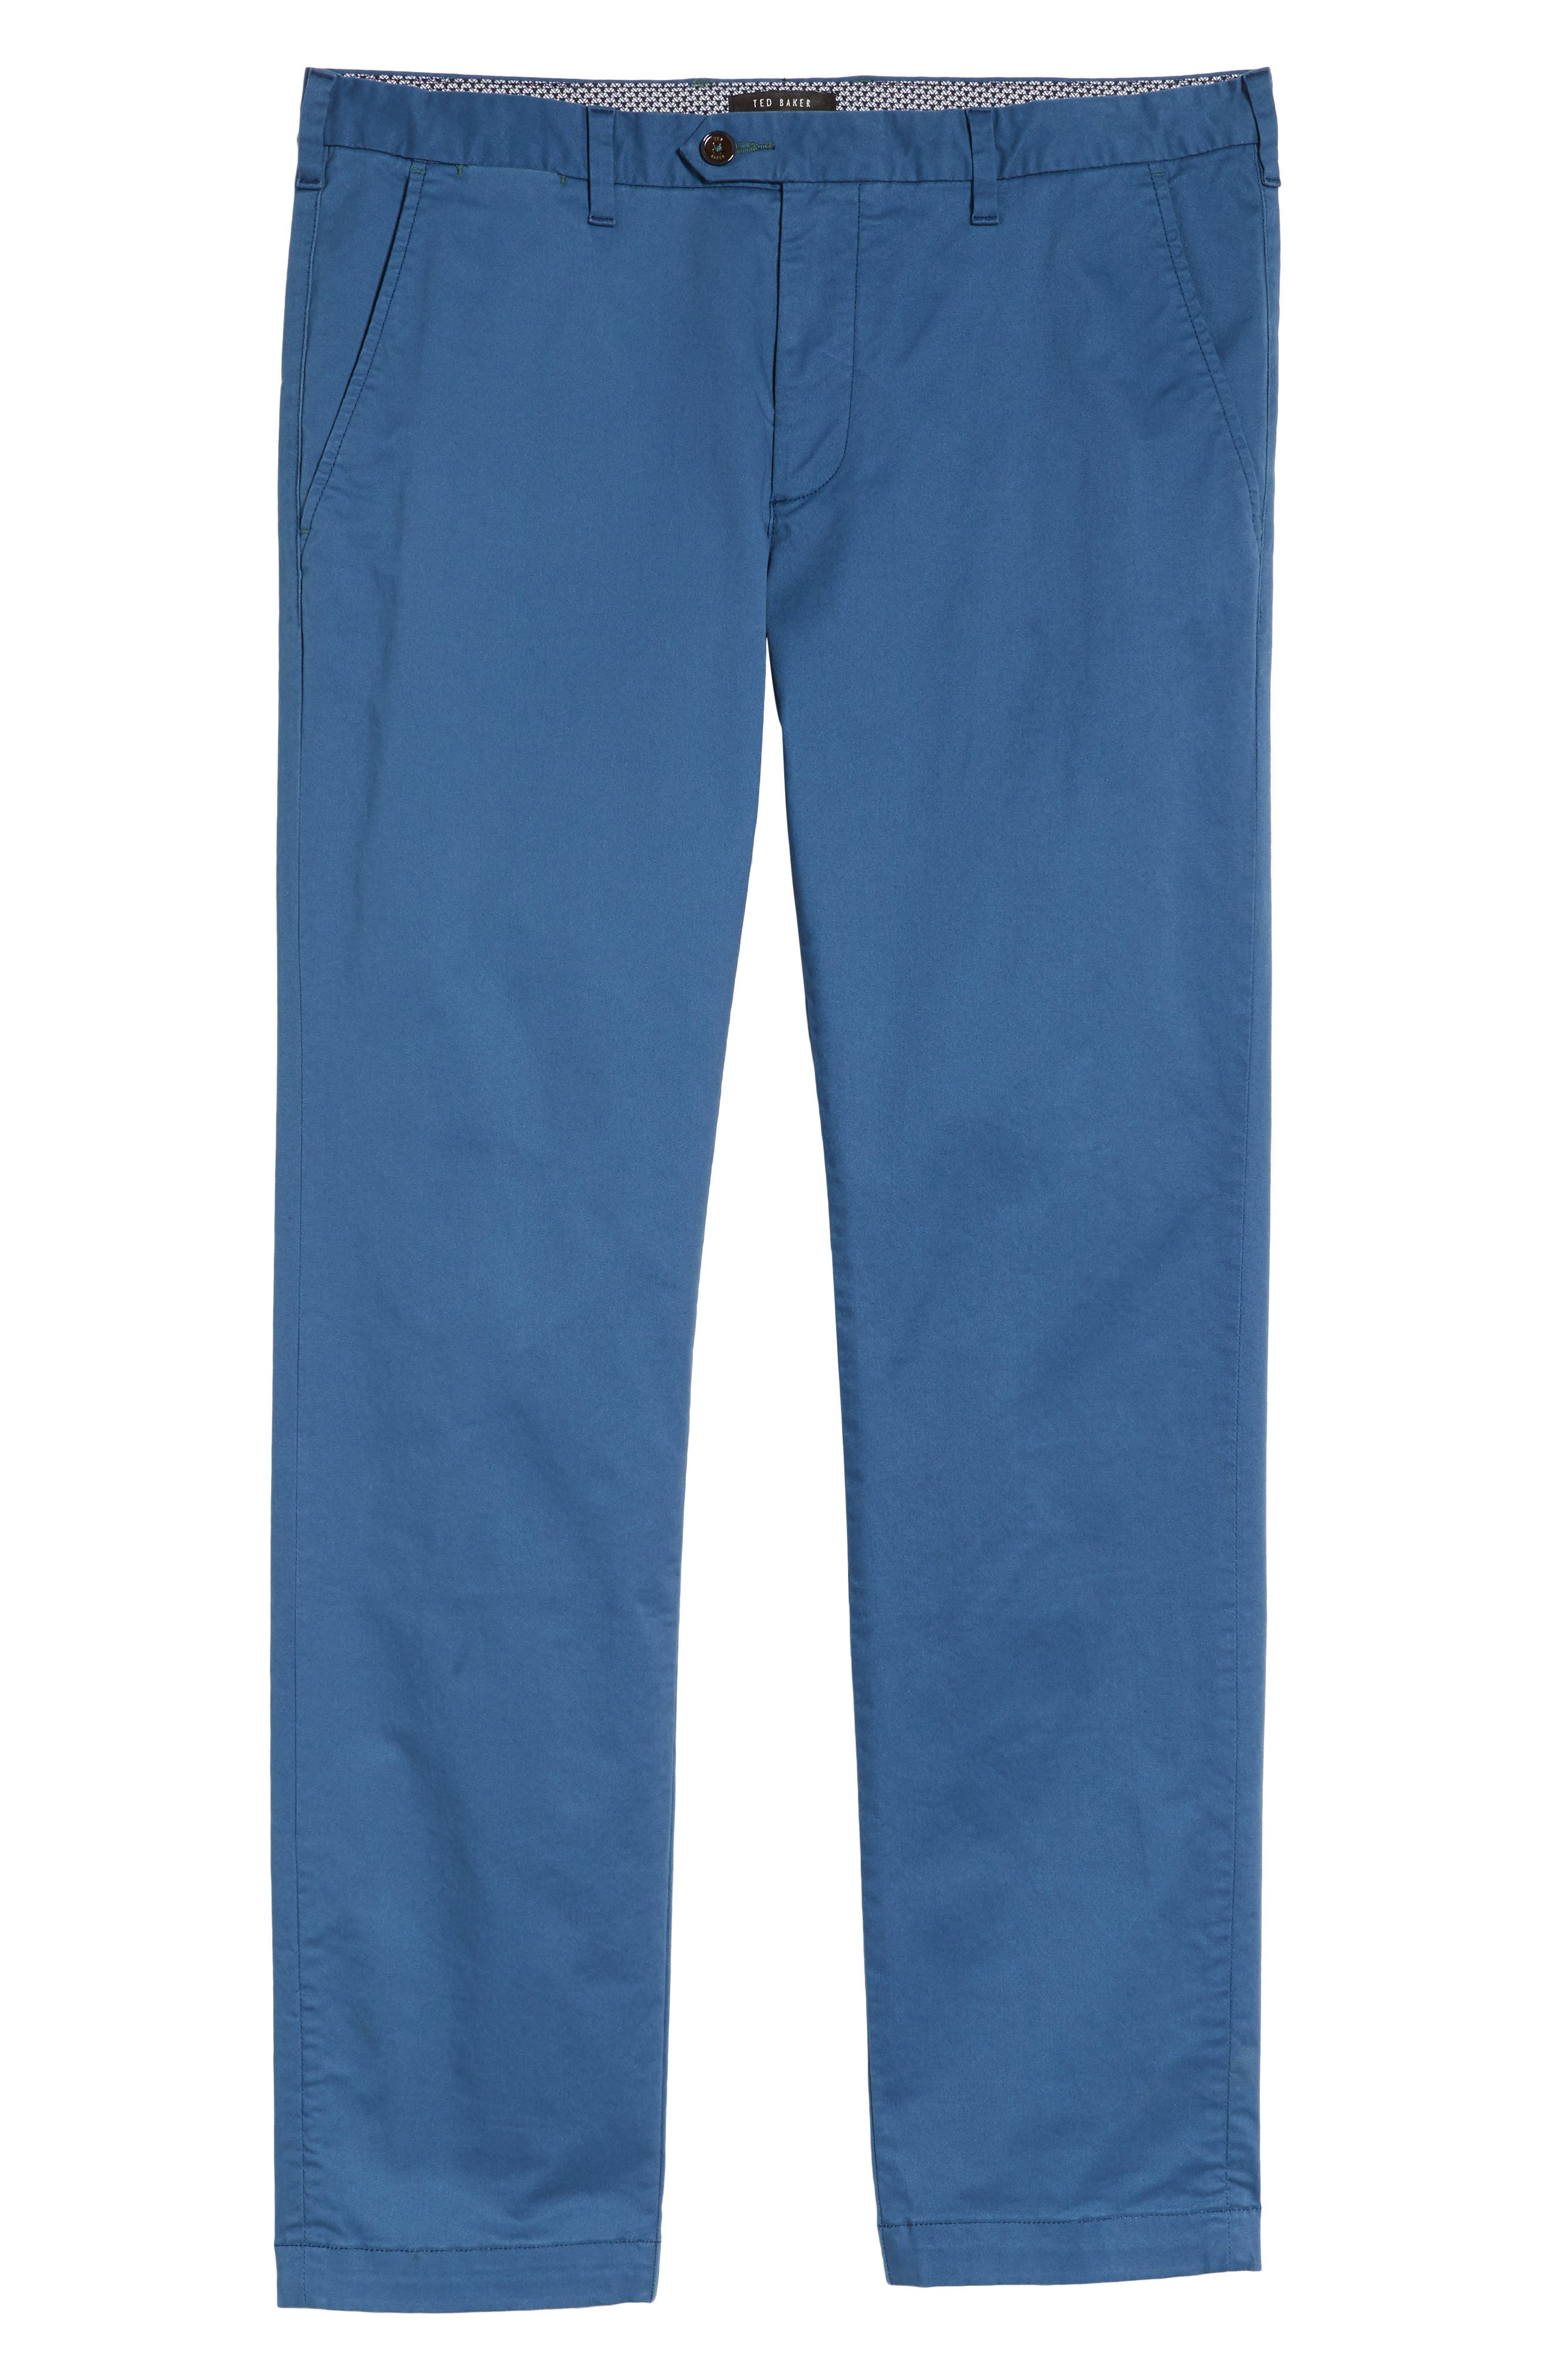 Procor Slim Fit Chino Pants,                             Alternate thumbnail 6, color,                             Navy